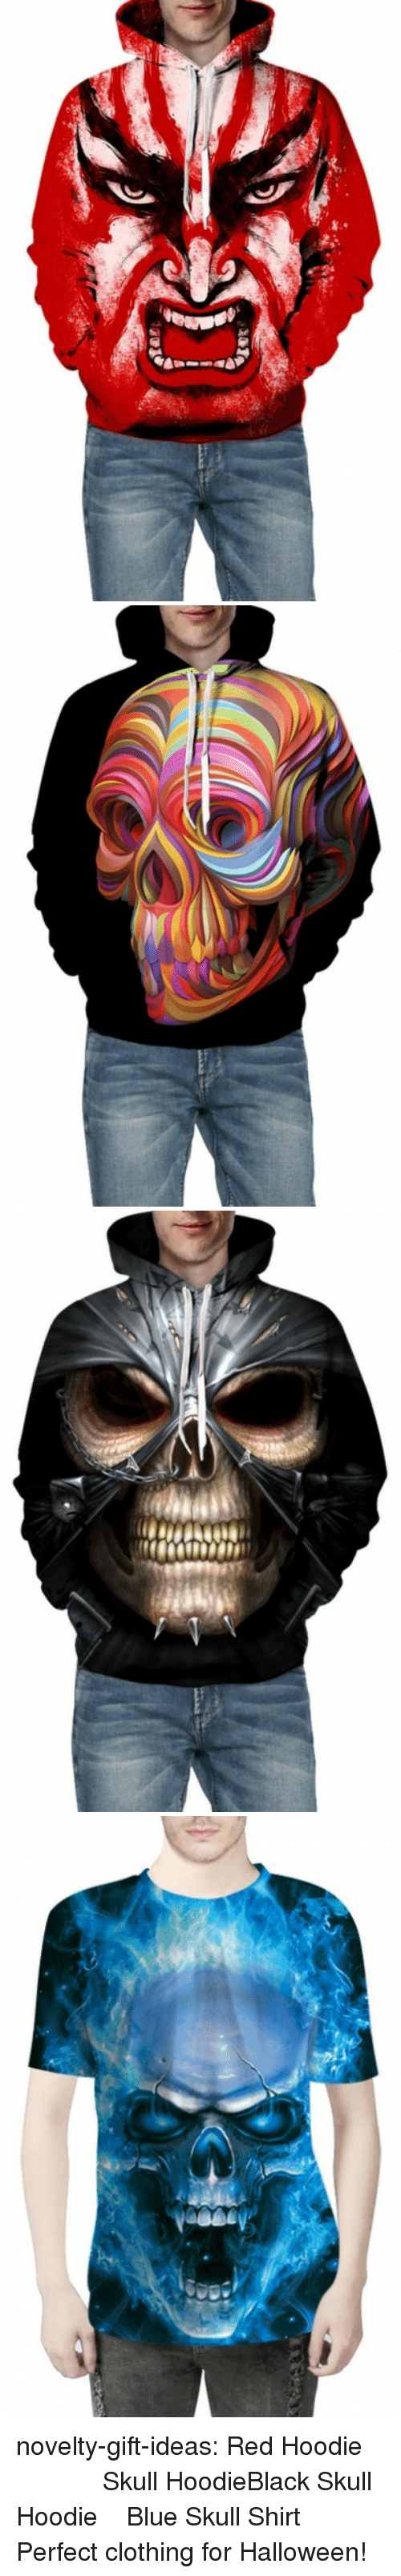 Fire, Halloween, and Tumblr: novelty-gift-ideas: Red Hoodie        Skull HoodieBlack Skull Hoodie  Blue Skull Shirt Perfect clothing for Halloween!